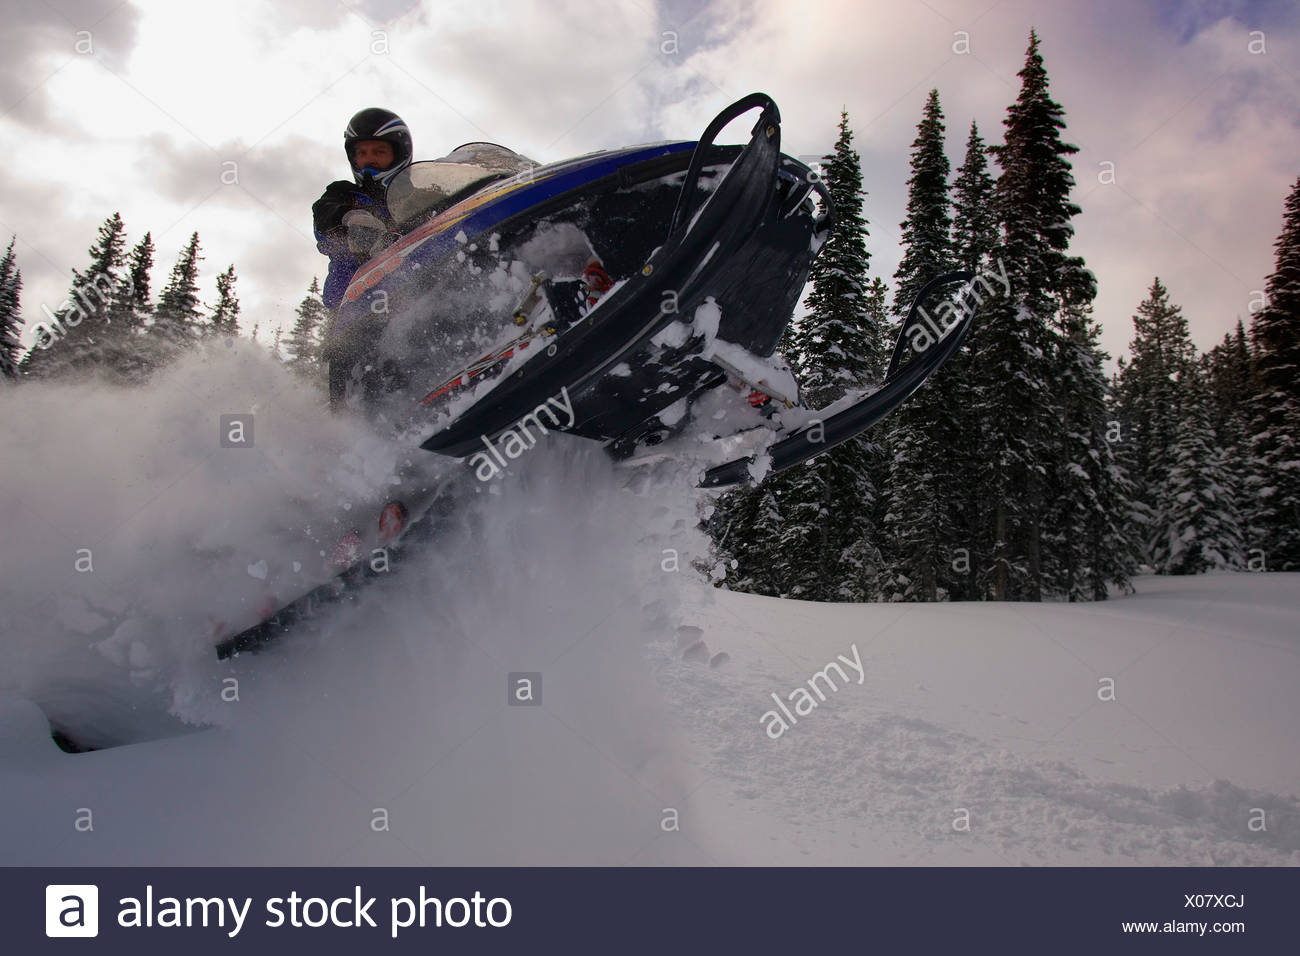 Man jumping a snowmobile - Stock Image